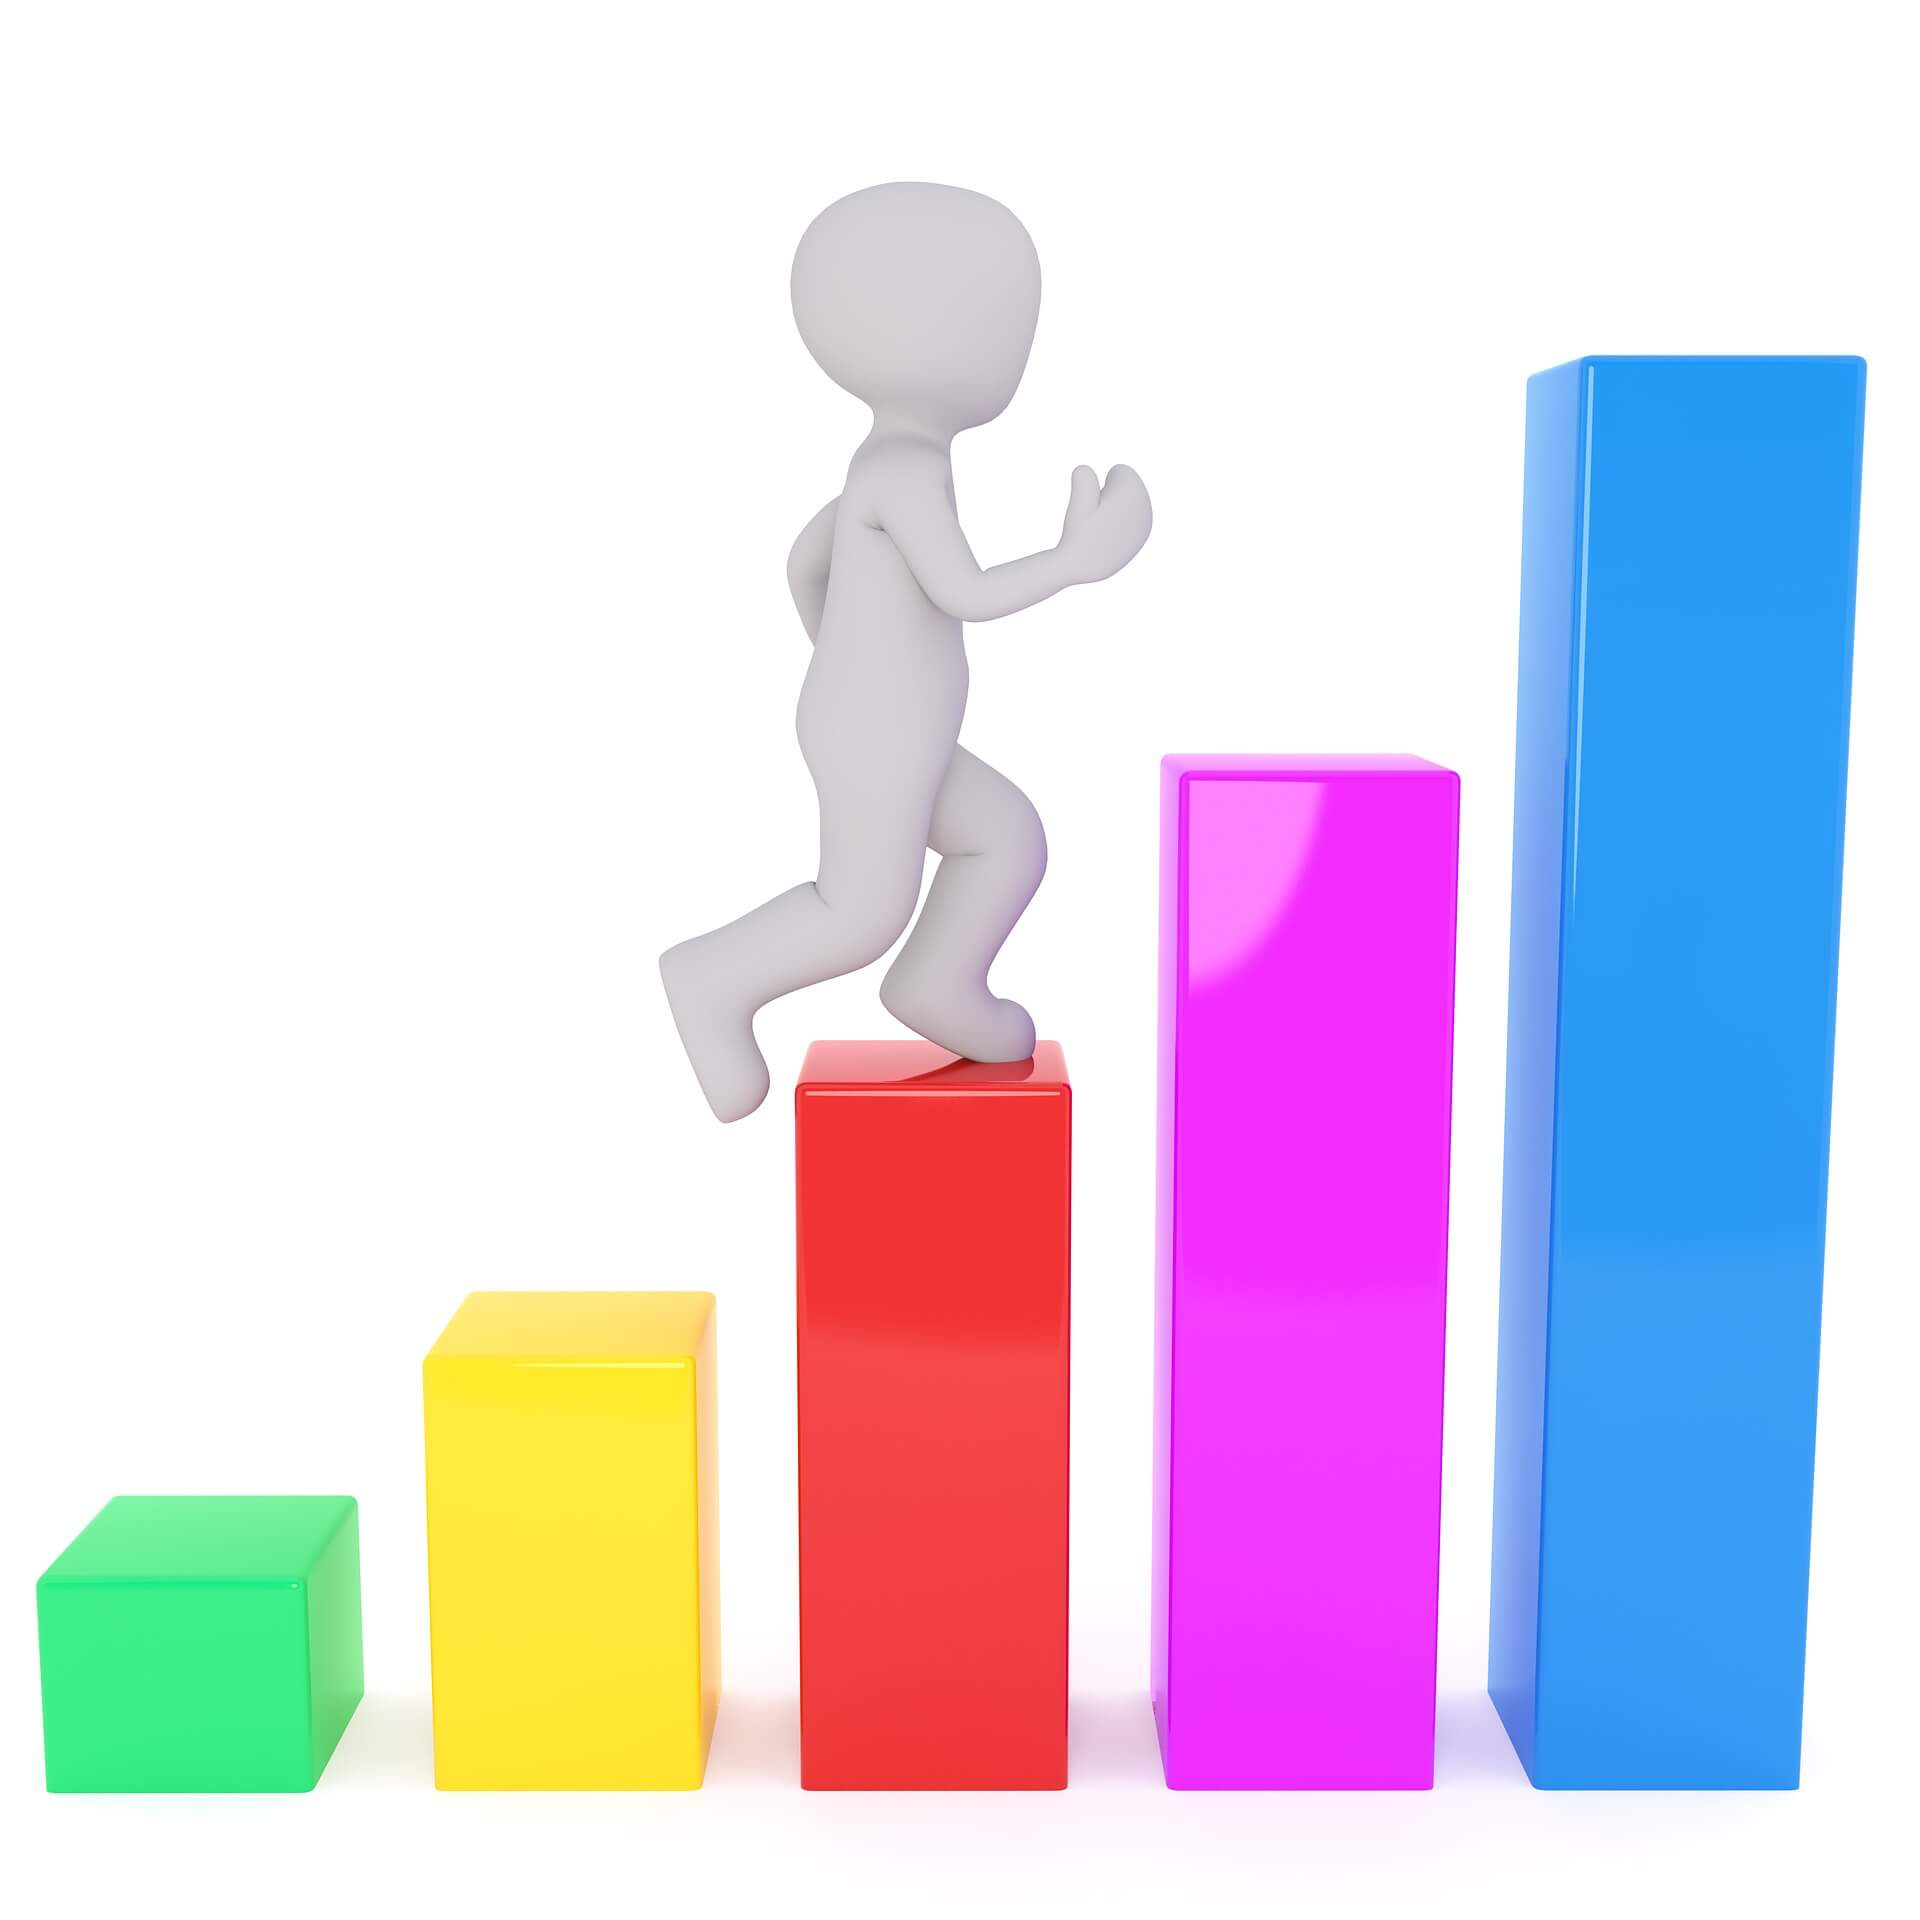 Student grades and confidence improving as he climbs the colourful stairs.